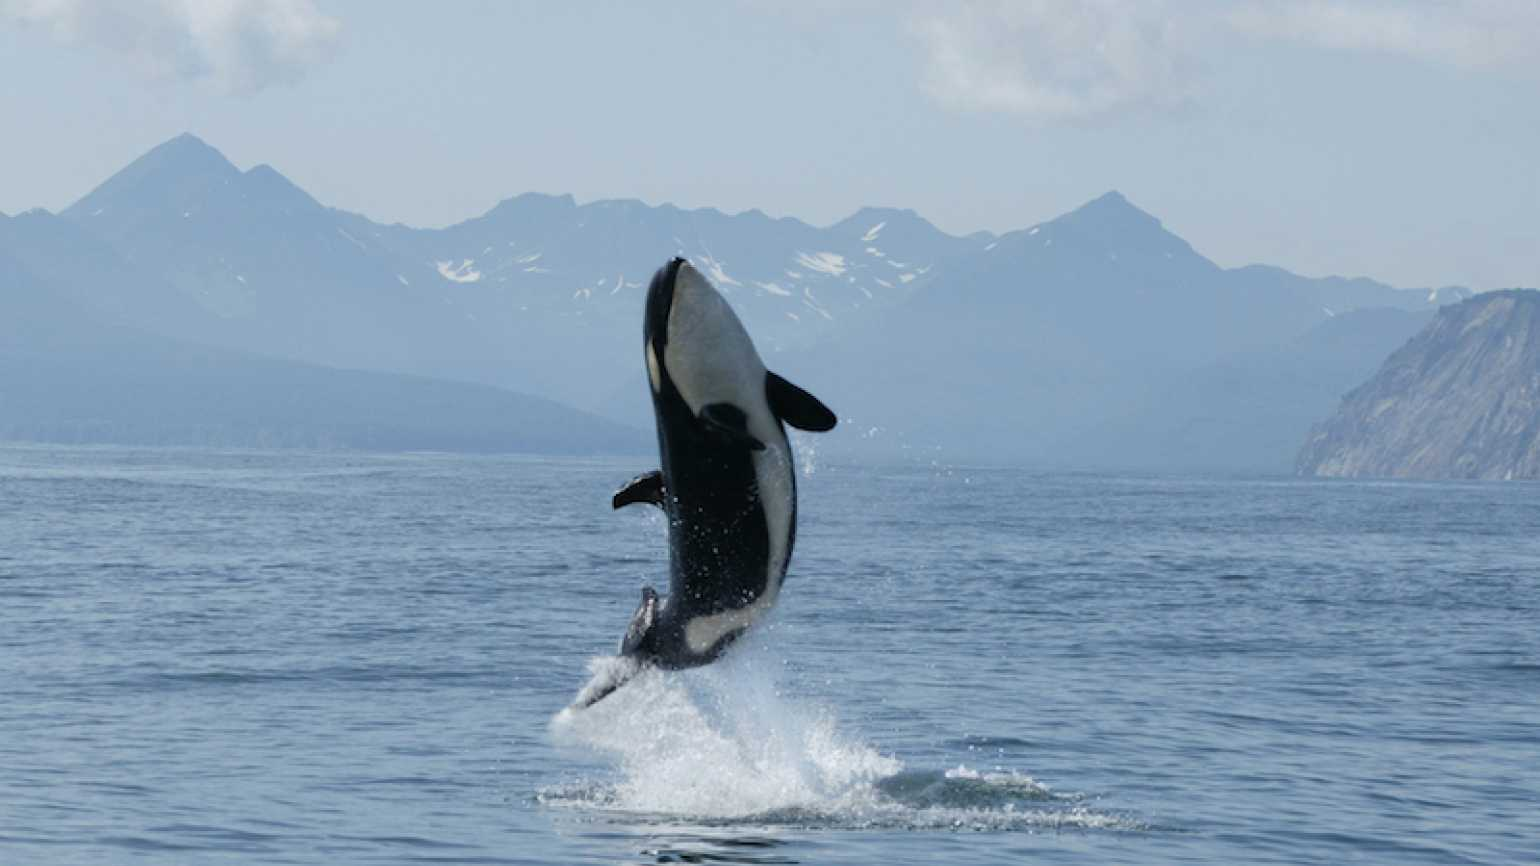 An orca whale leaping. Photo by Tatiana Ivkovich for Thinkstock.